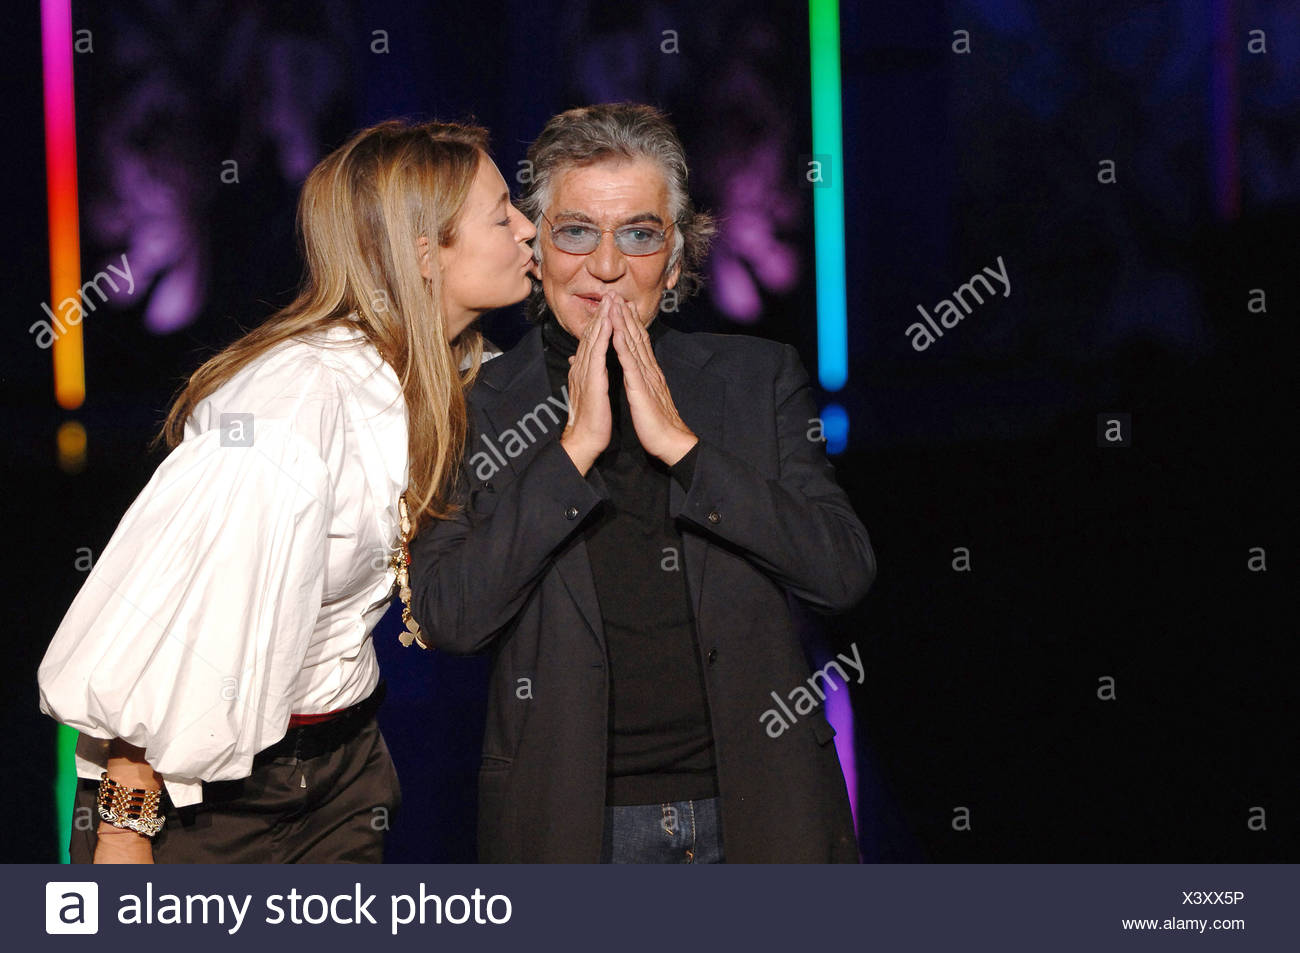 Just Cavalli Ready To Wear Milan A W Italian Fashion Designer Roberto Cavalli Recieves A Kiss From His Wife Business Partner Stock Photo Alamy